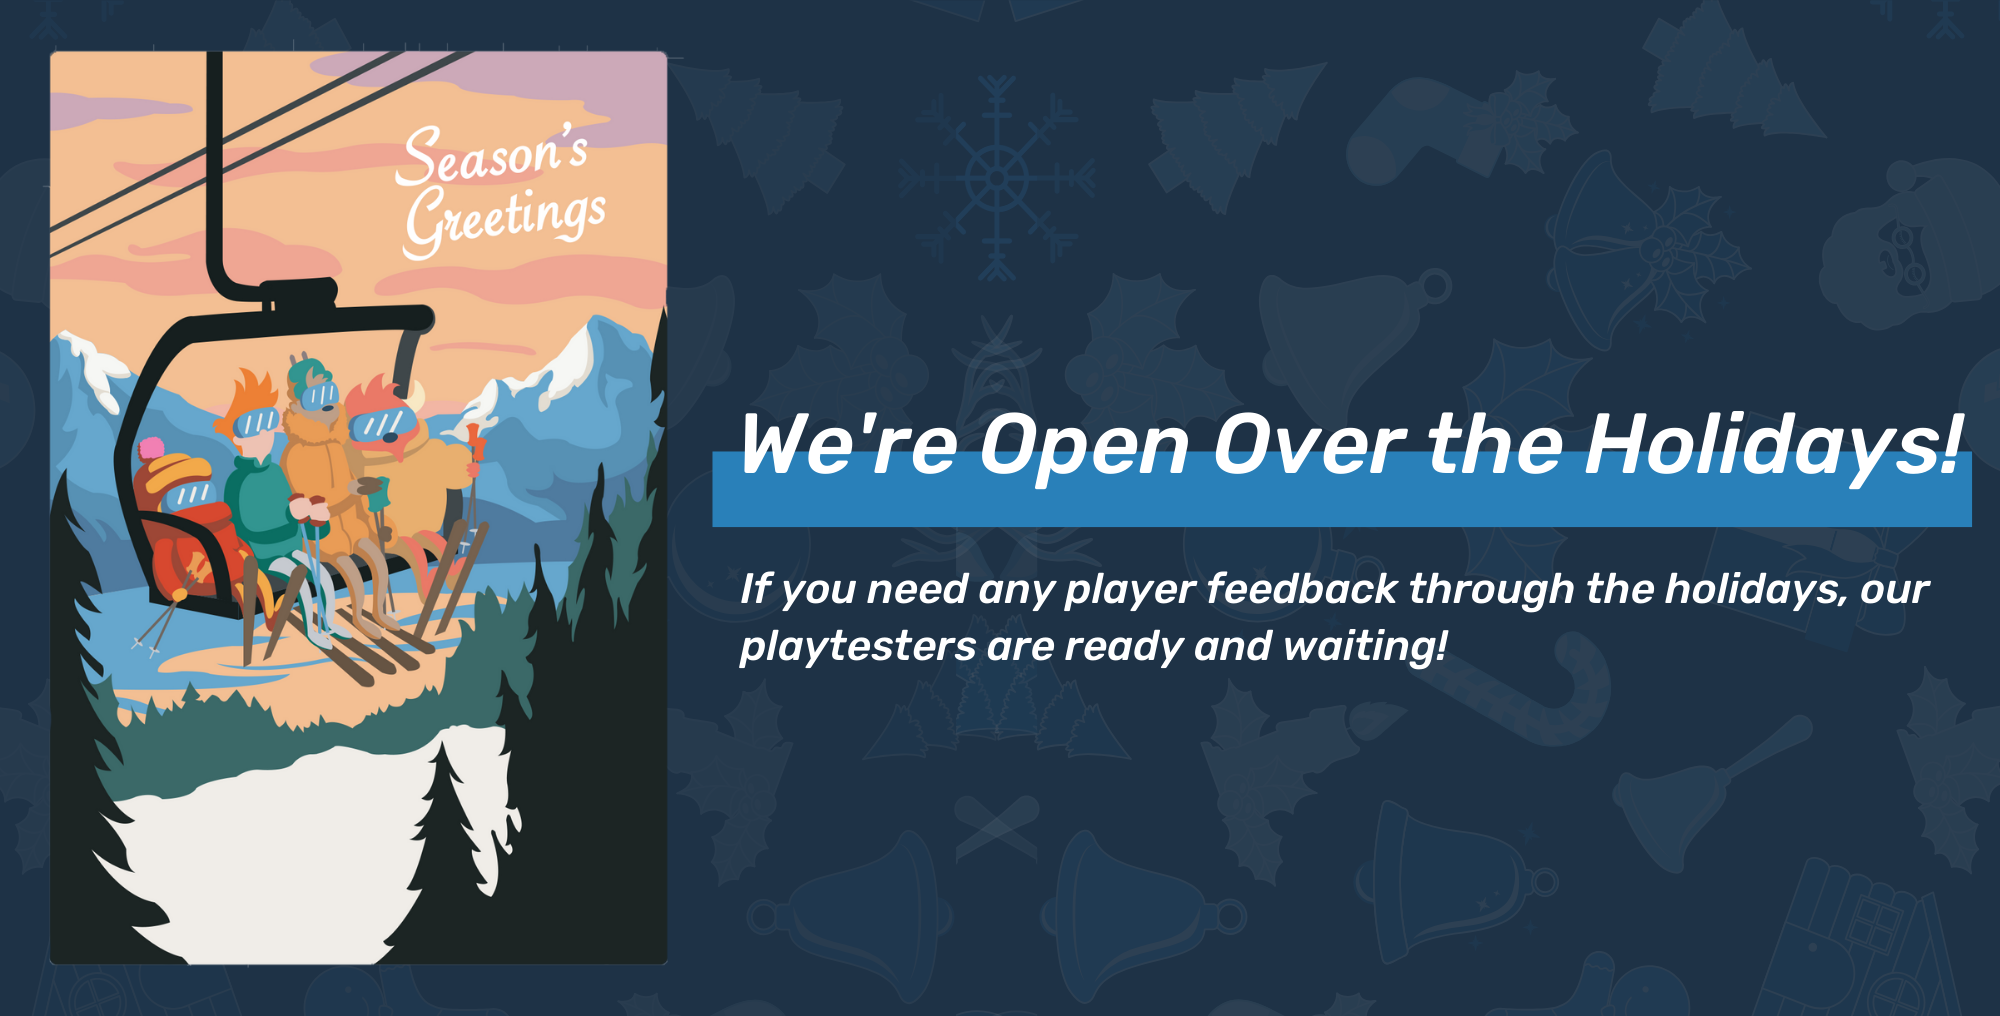 Happy Holidays from your friends at PlaytestCloud!